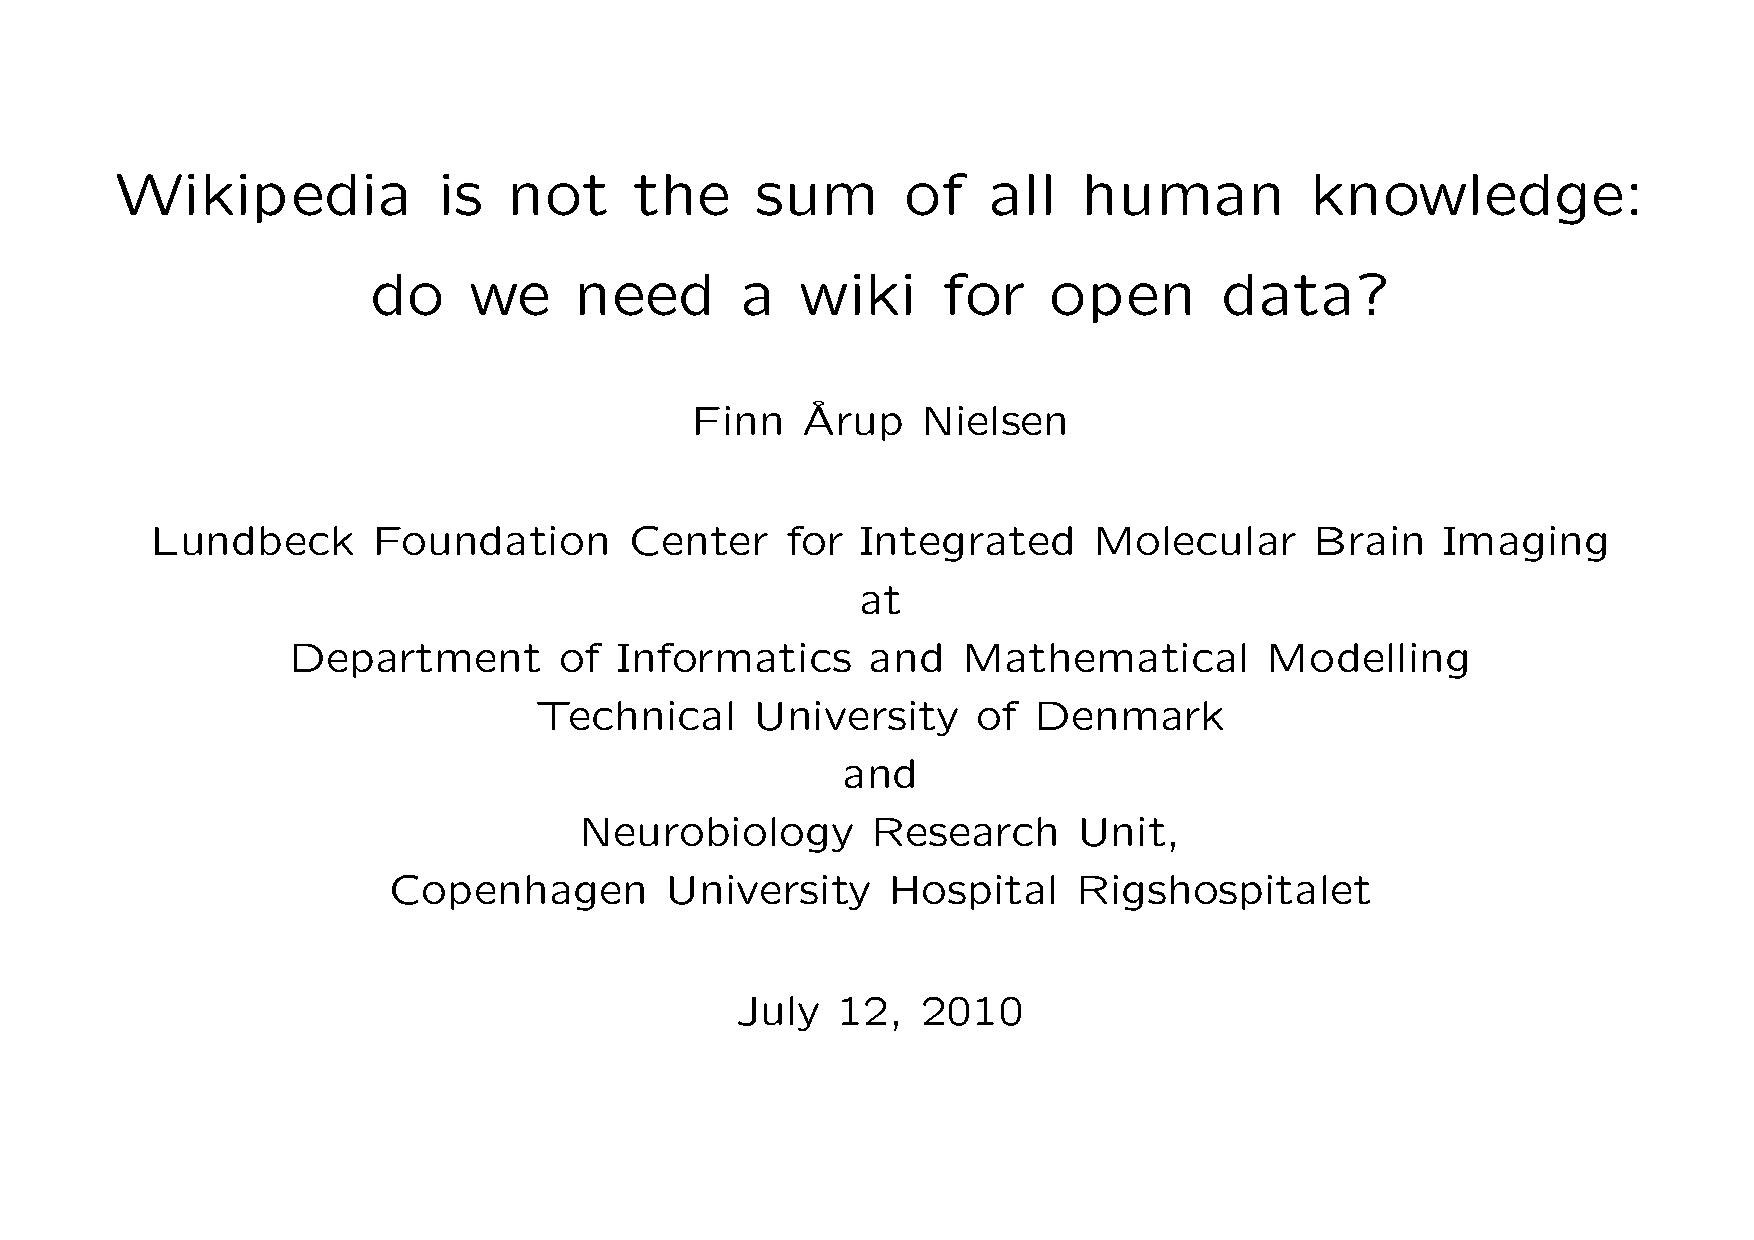 Finn Årup Nielsen - Wikipedia is not the sum of all human knowledge - Wikimania 2010.pdf